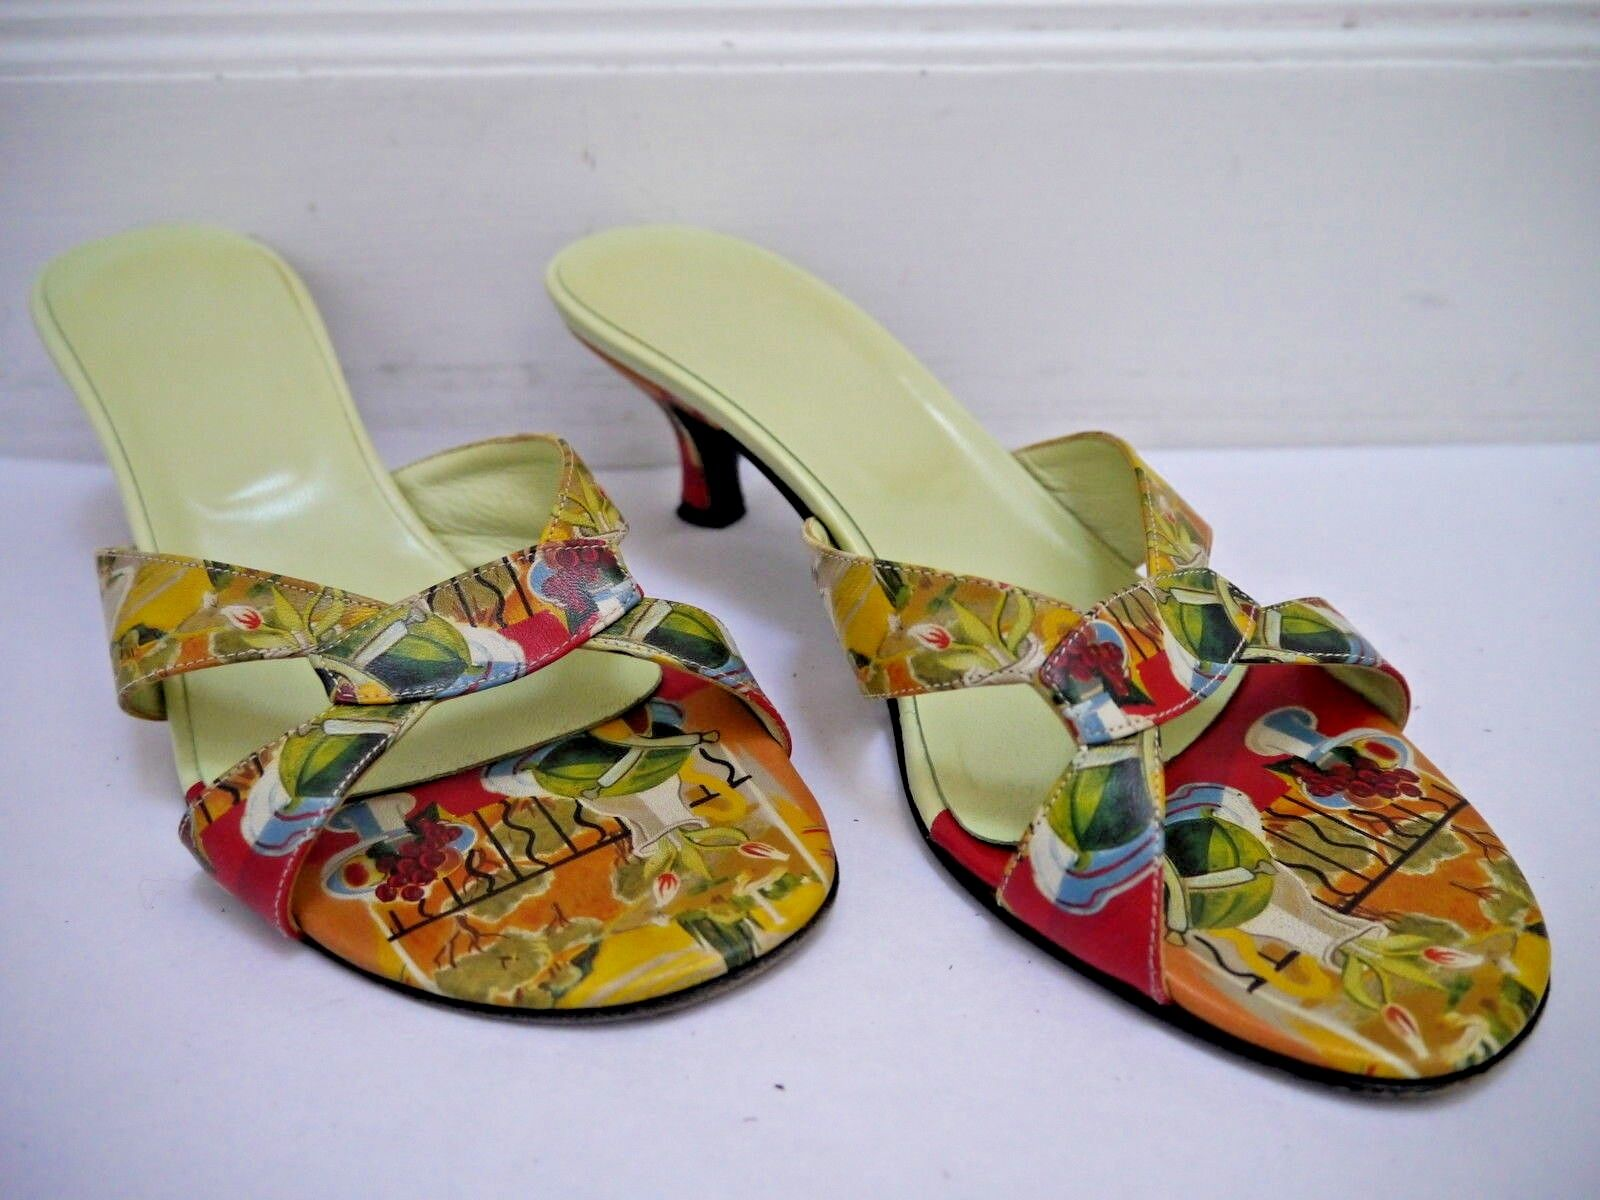 ICON Matisse still life print leather low heeled slides sandals size 6